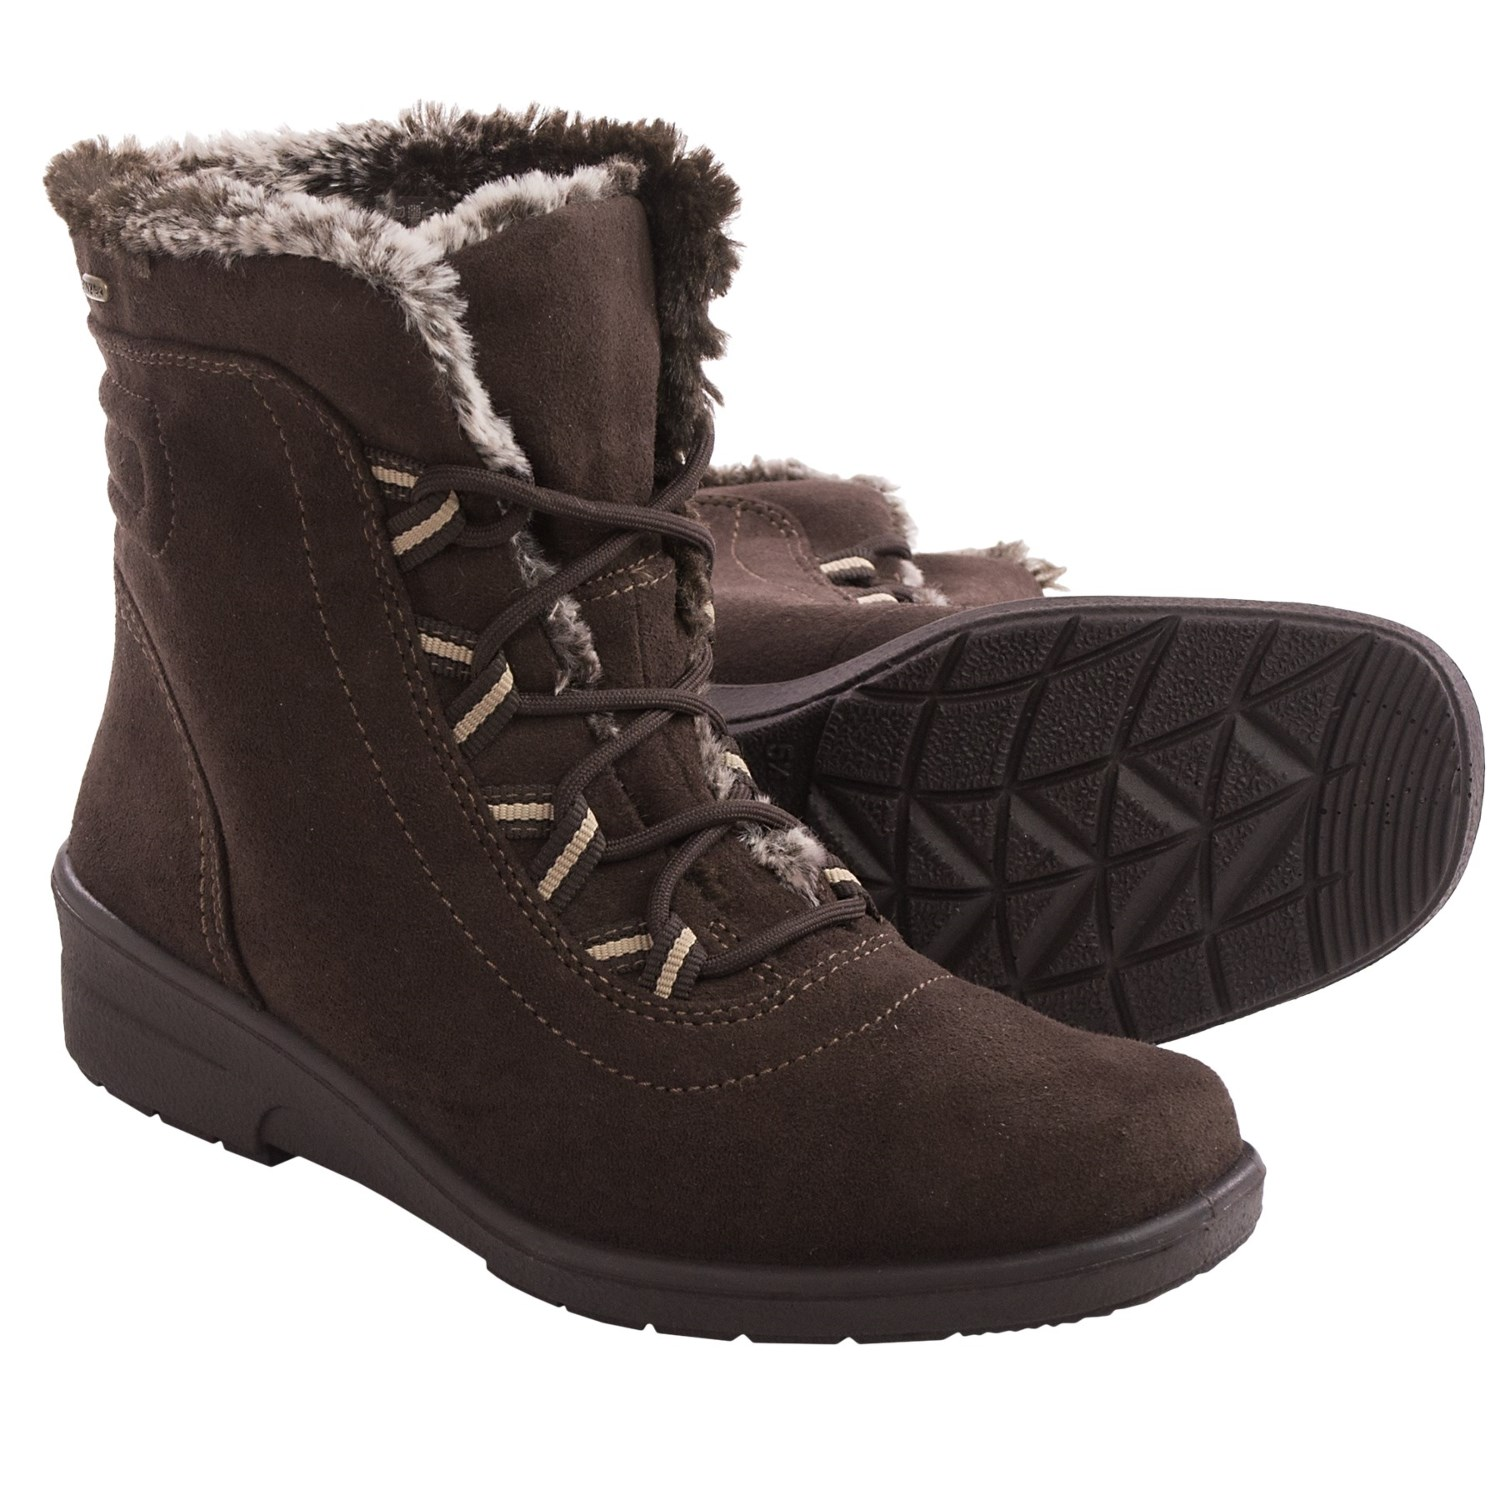 Jenny Munchen Snow Boots (For Women) 9320G - Save 89%